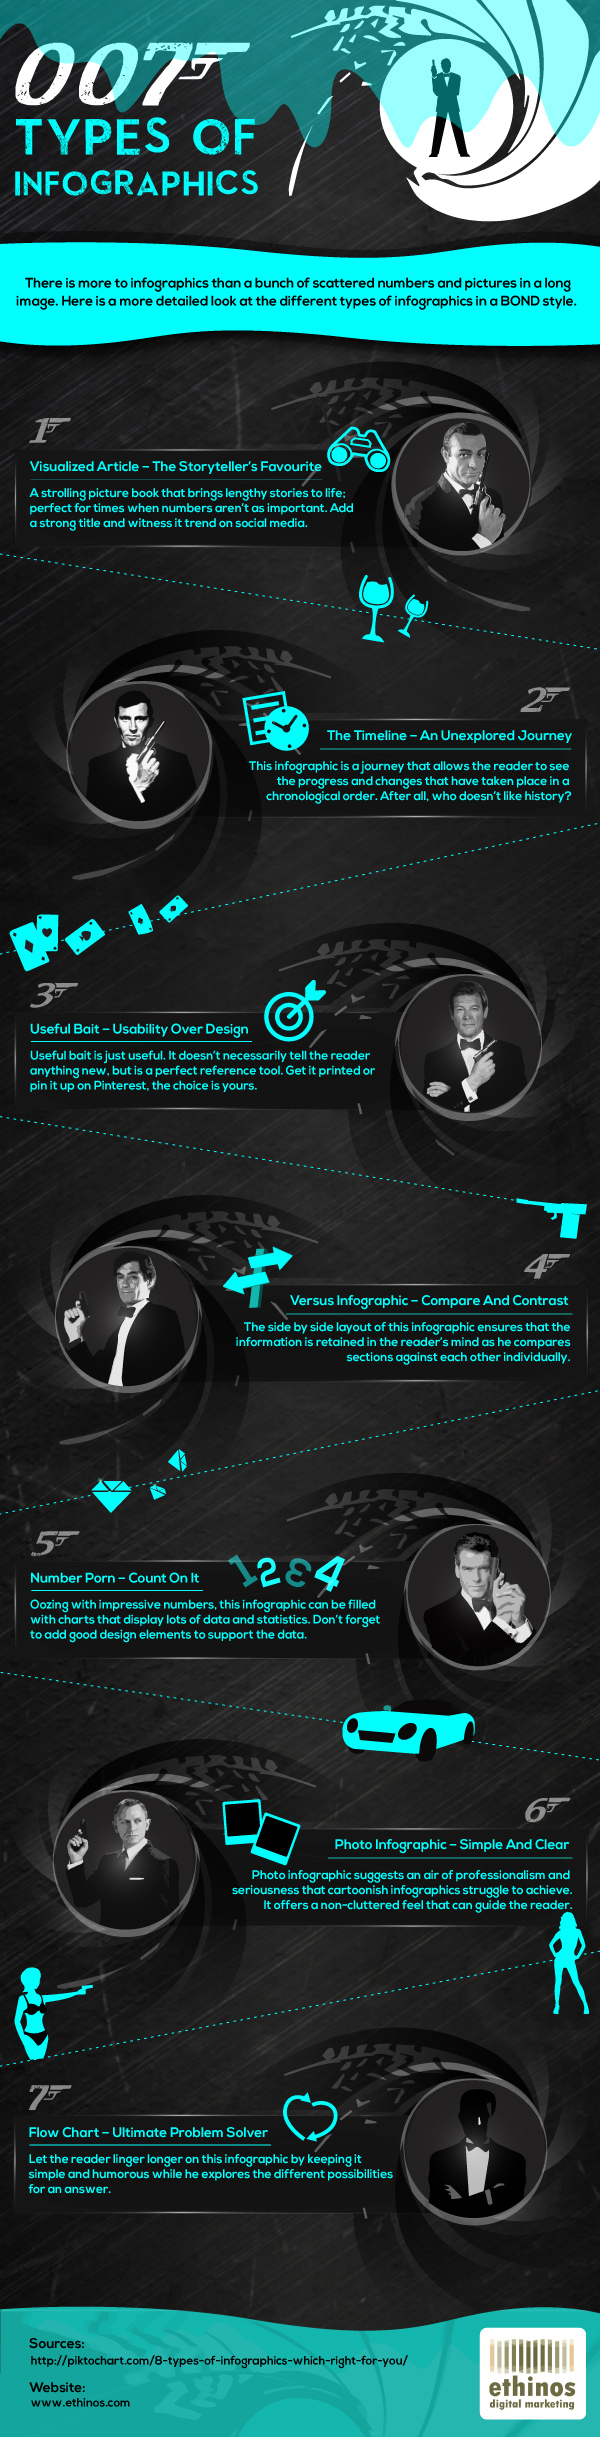 7 Types of Infographics That Will Help You Do Marketing 007 Style